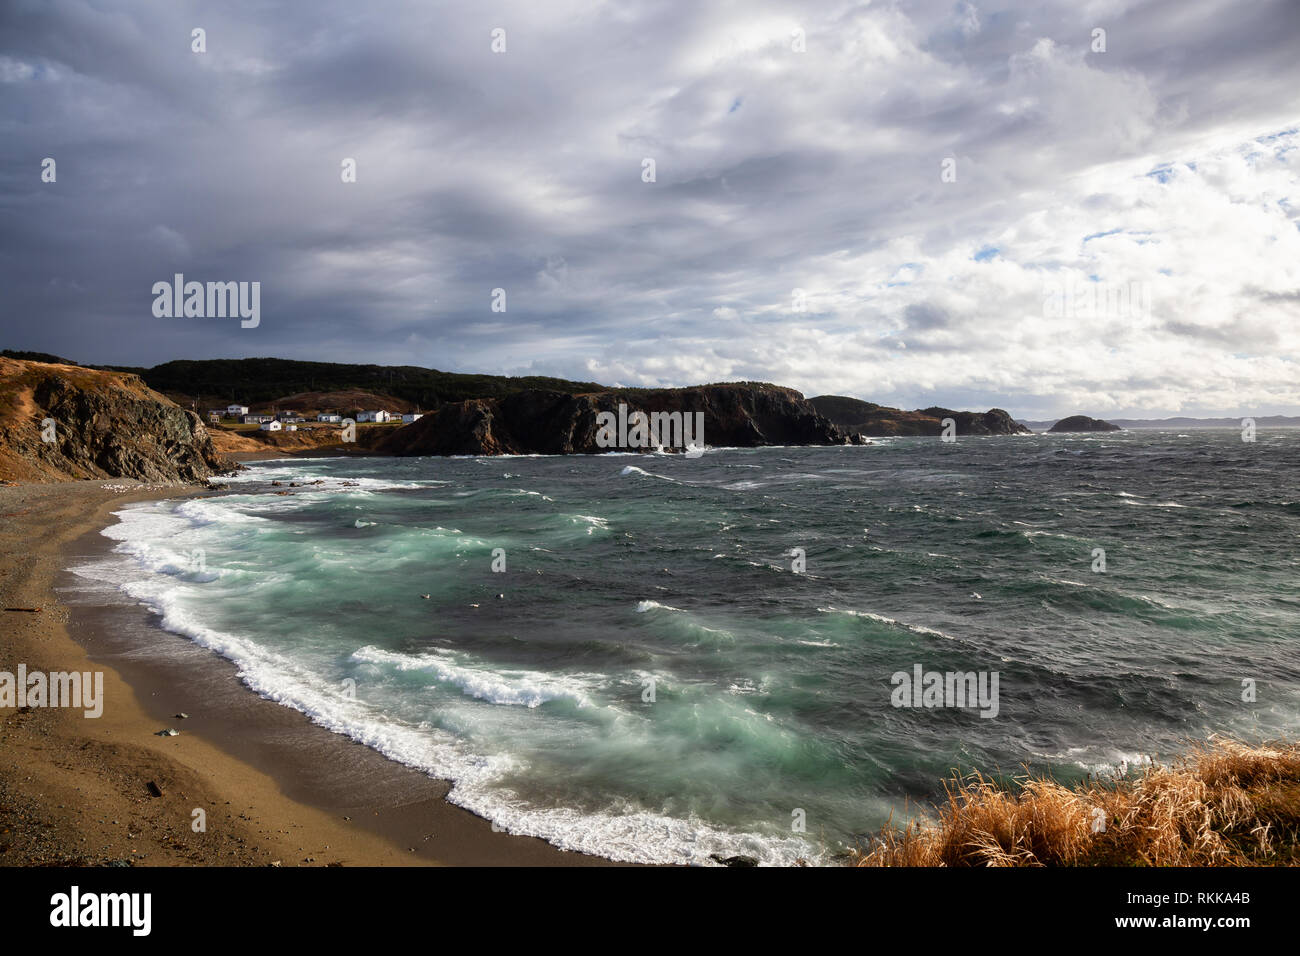 Seascape view of a raging ocean on the Atlantic Coast during a stormy and windy day. Taken in Crow Head, North Twillingate Island, Newfoundland and La Stock Photo